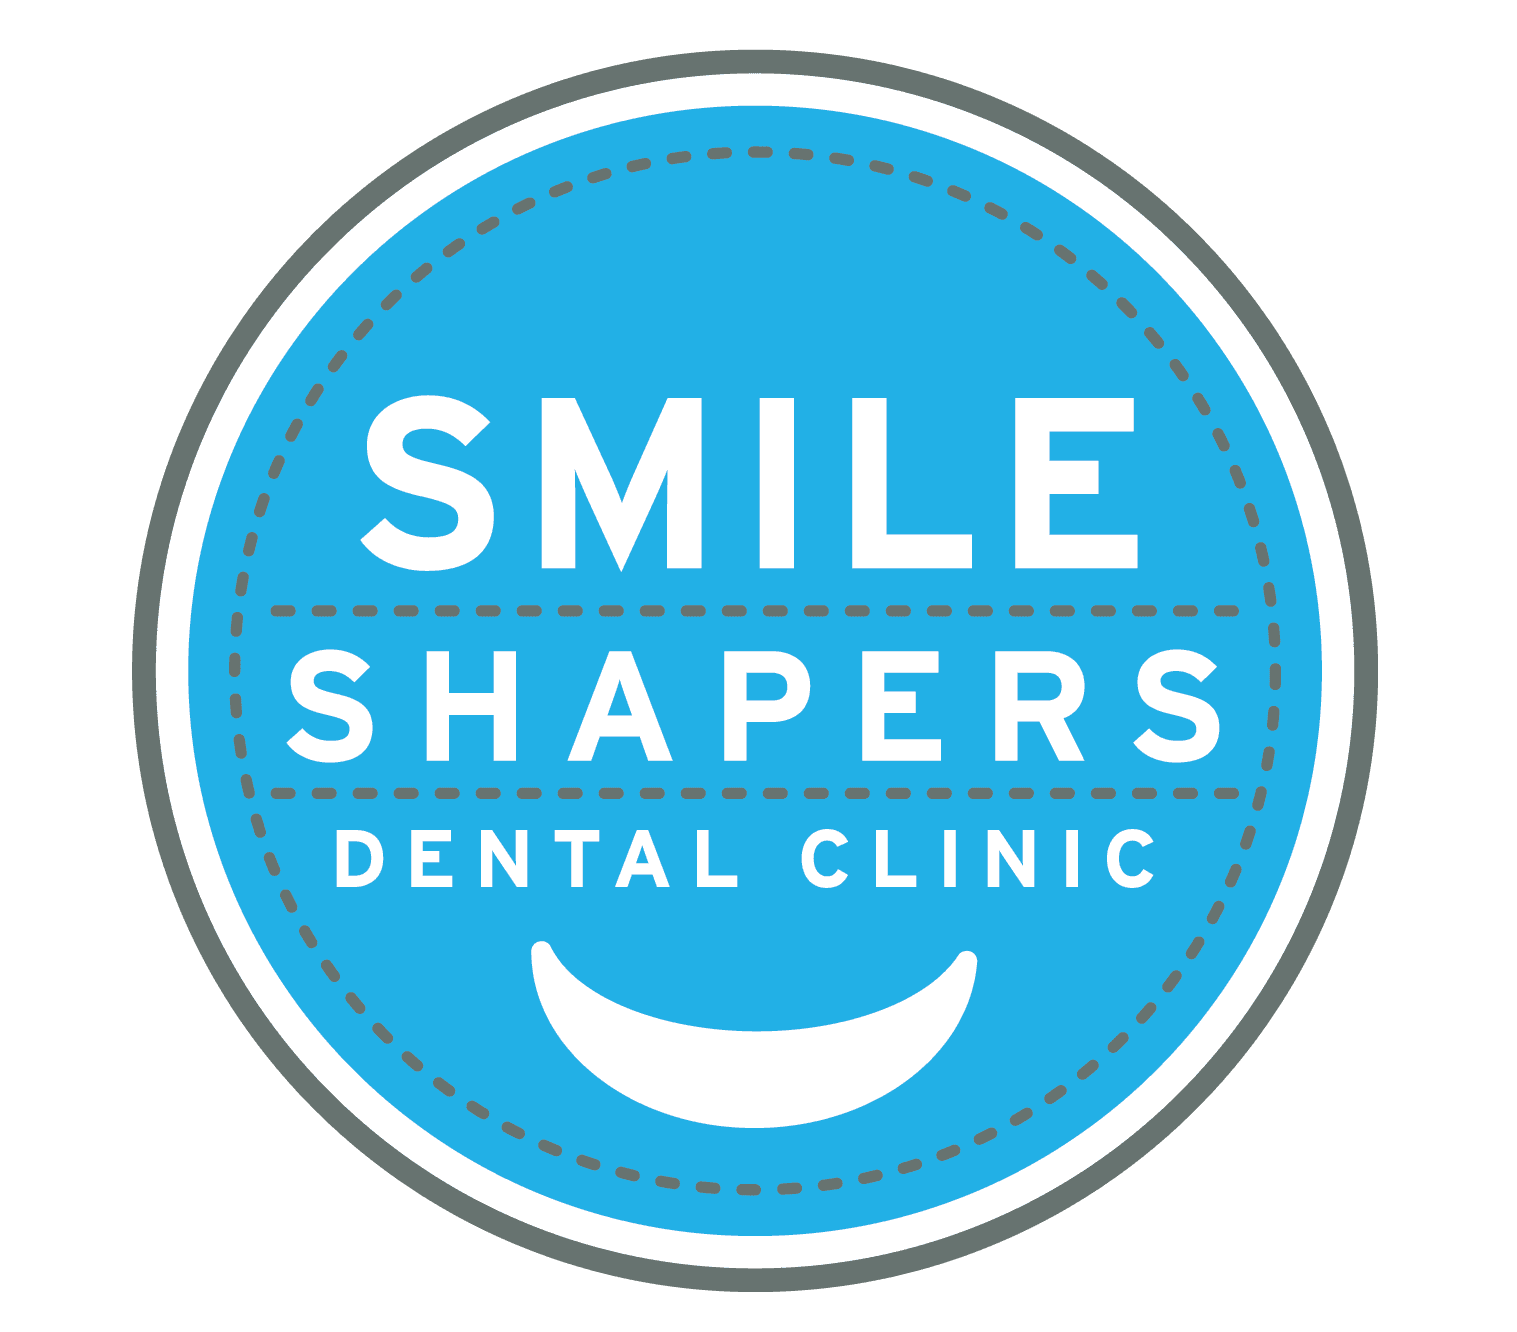 Smile Shapers Dental Clinic